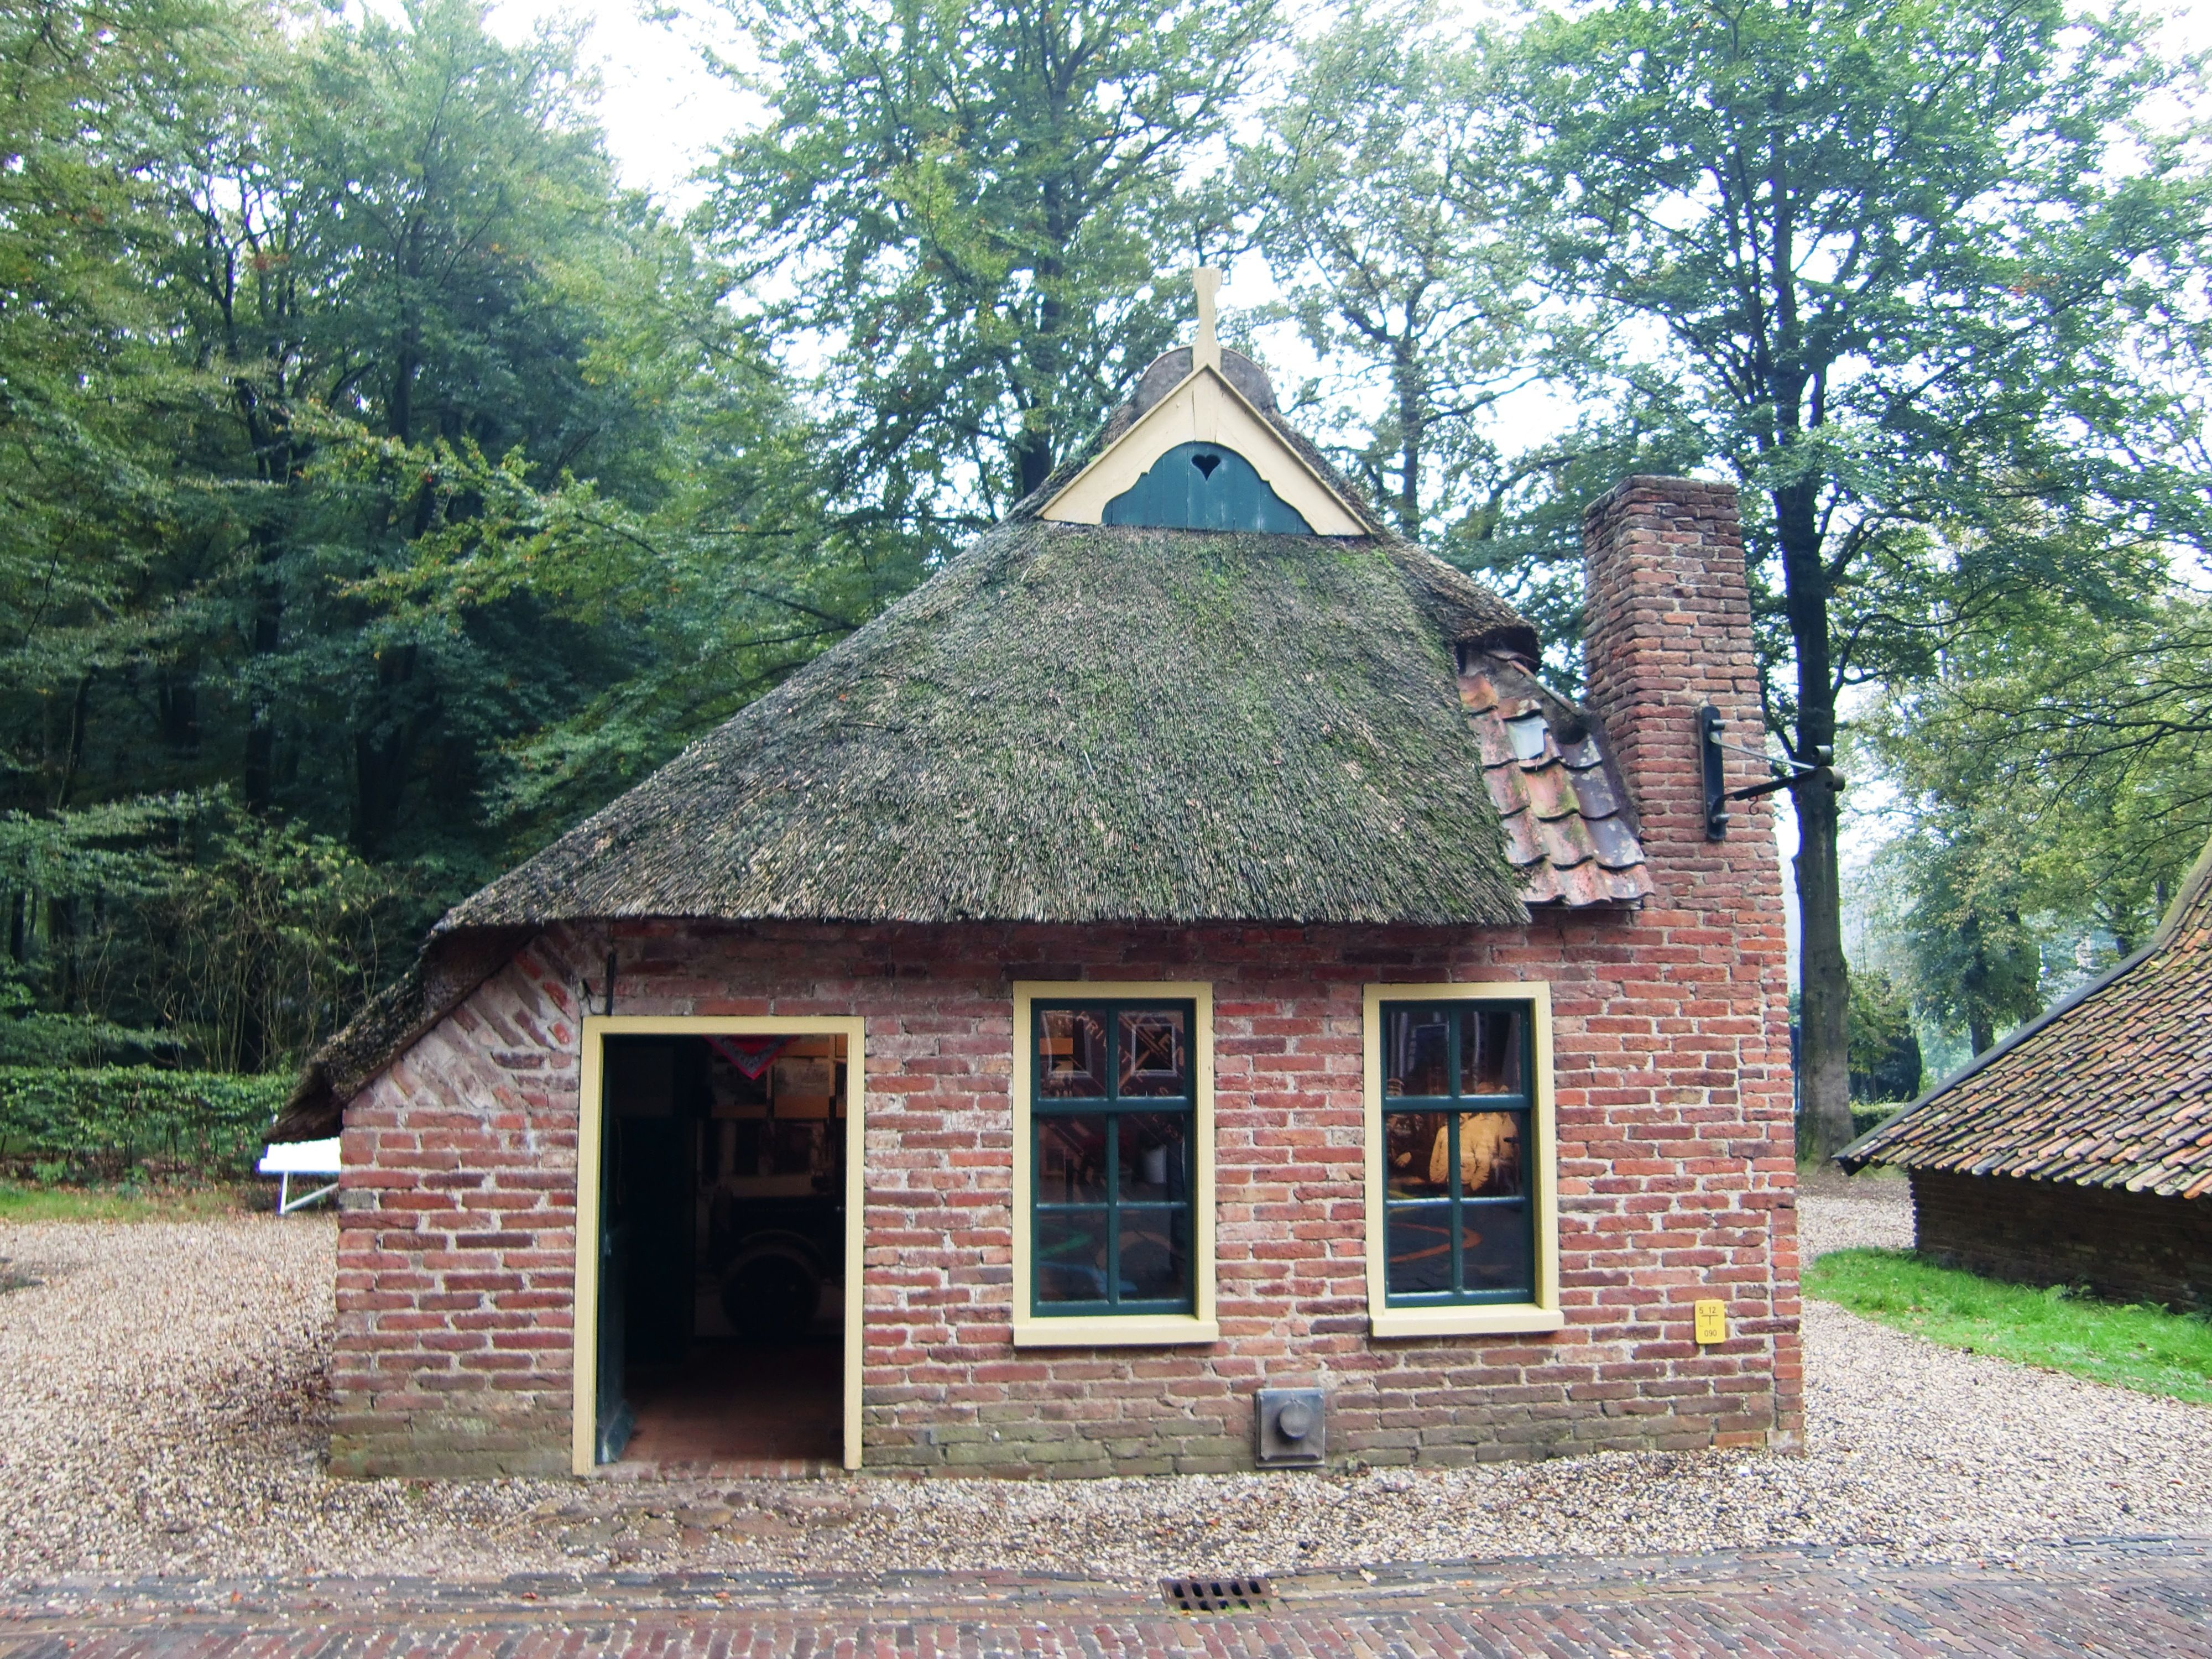 Small Old House Brick With Chimney And Old Style Roofing The